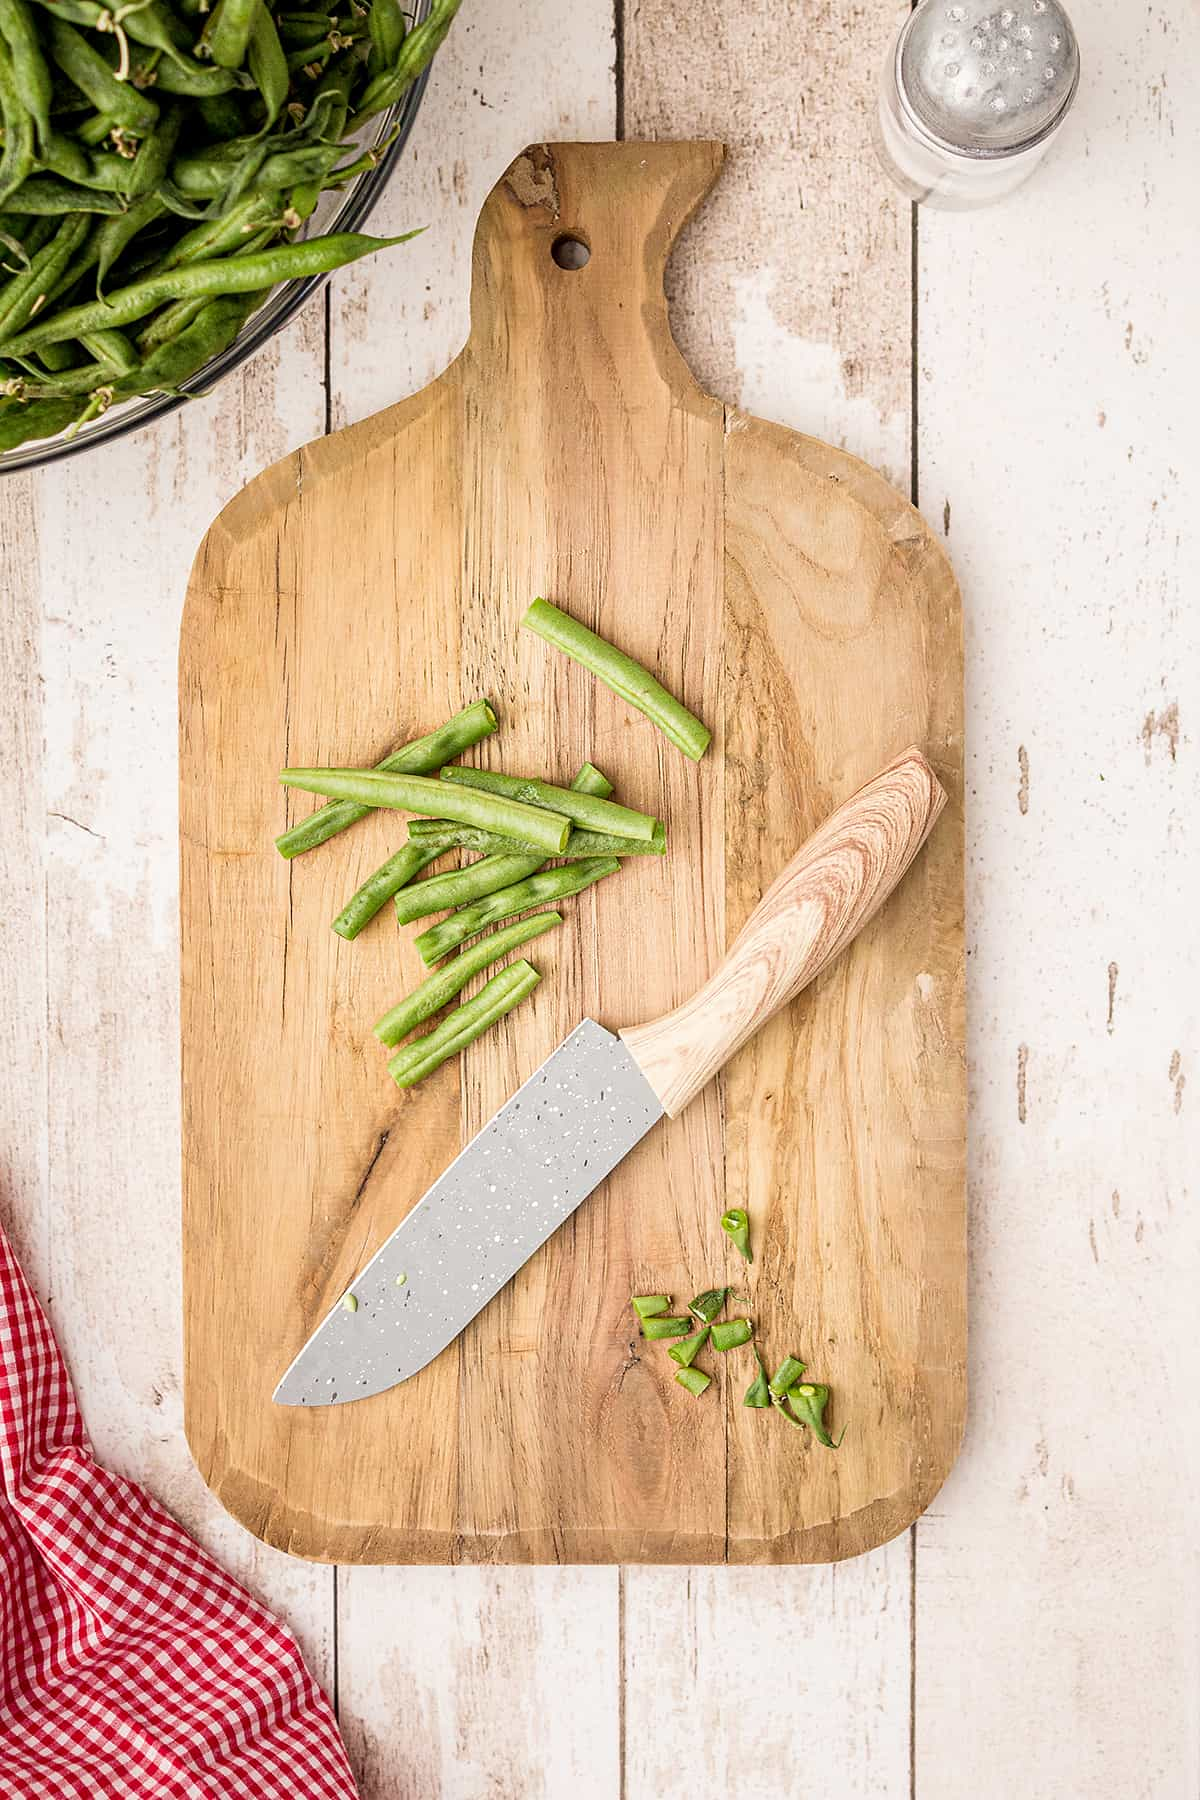 Fresh green beans on a cutting board with a knife.